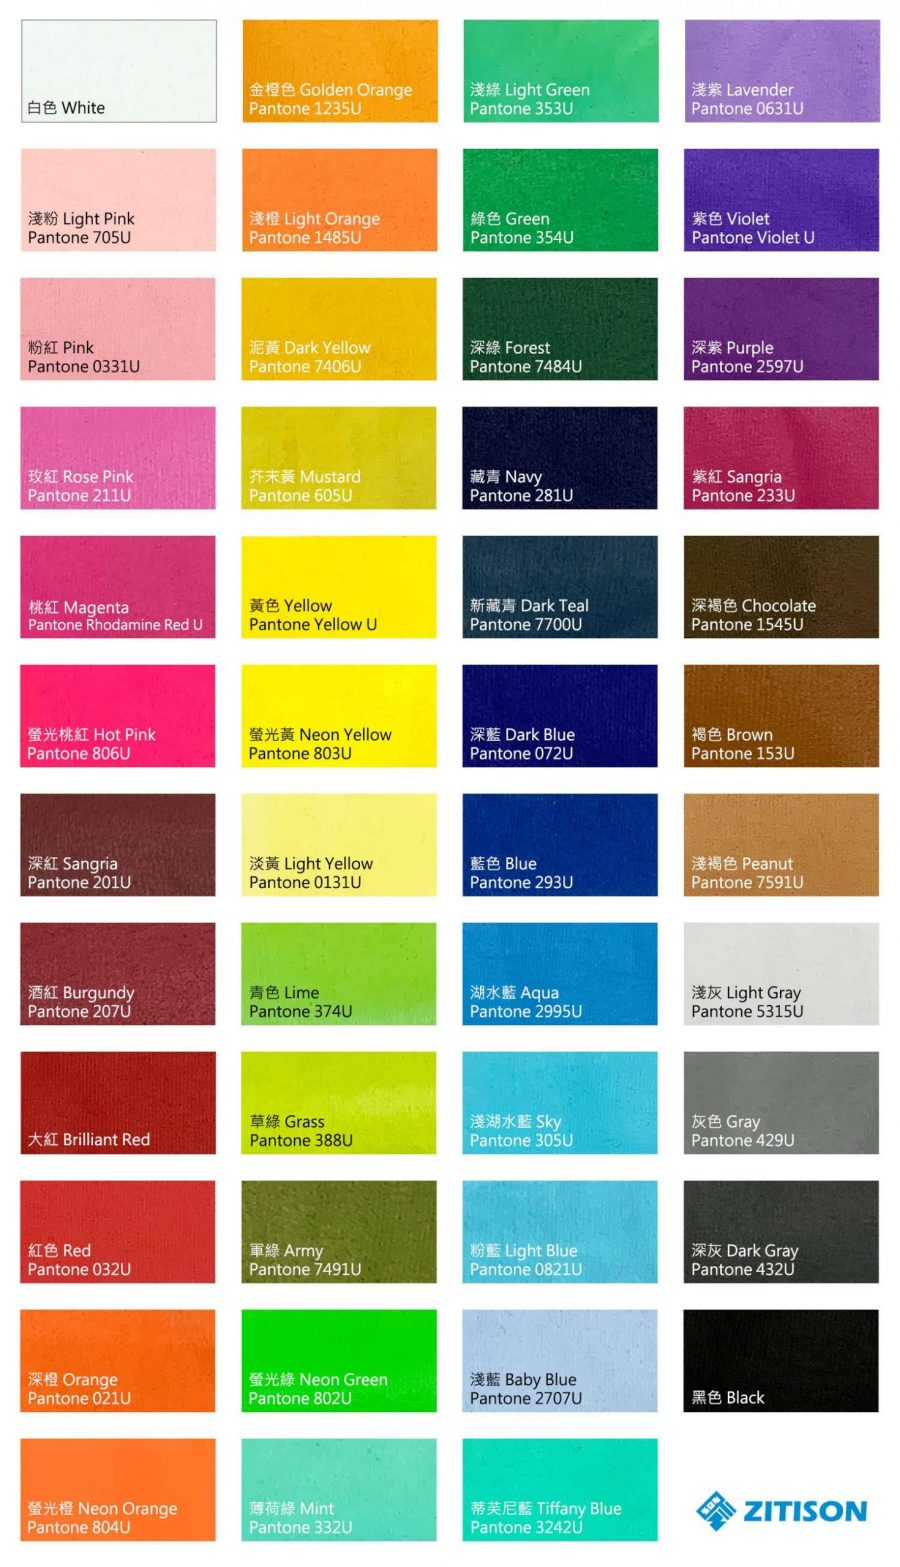 zitison-printing-color-swatch